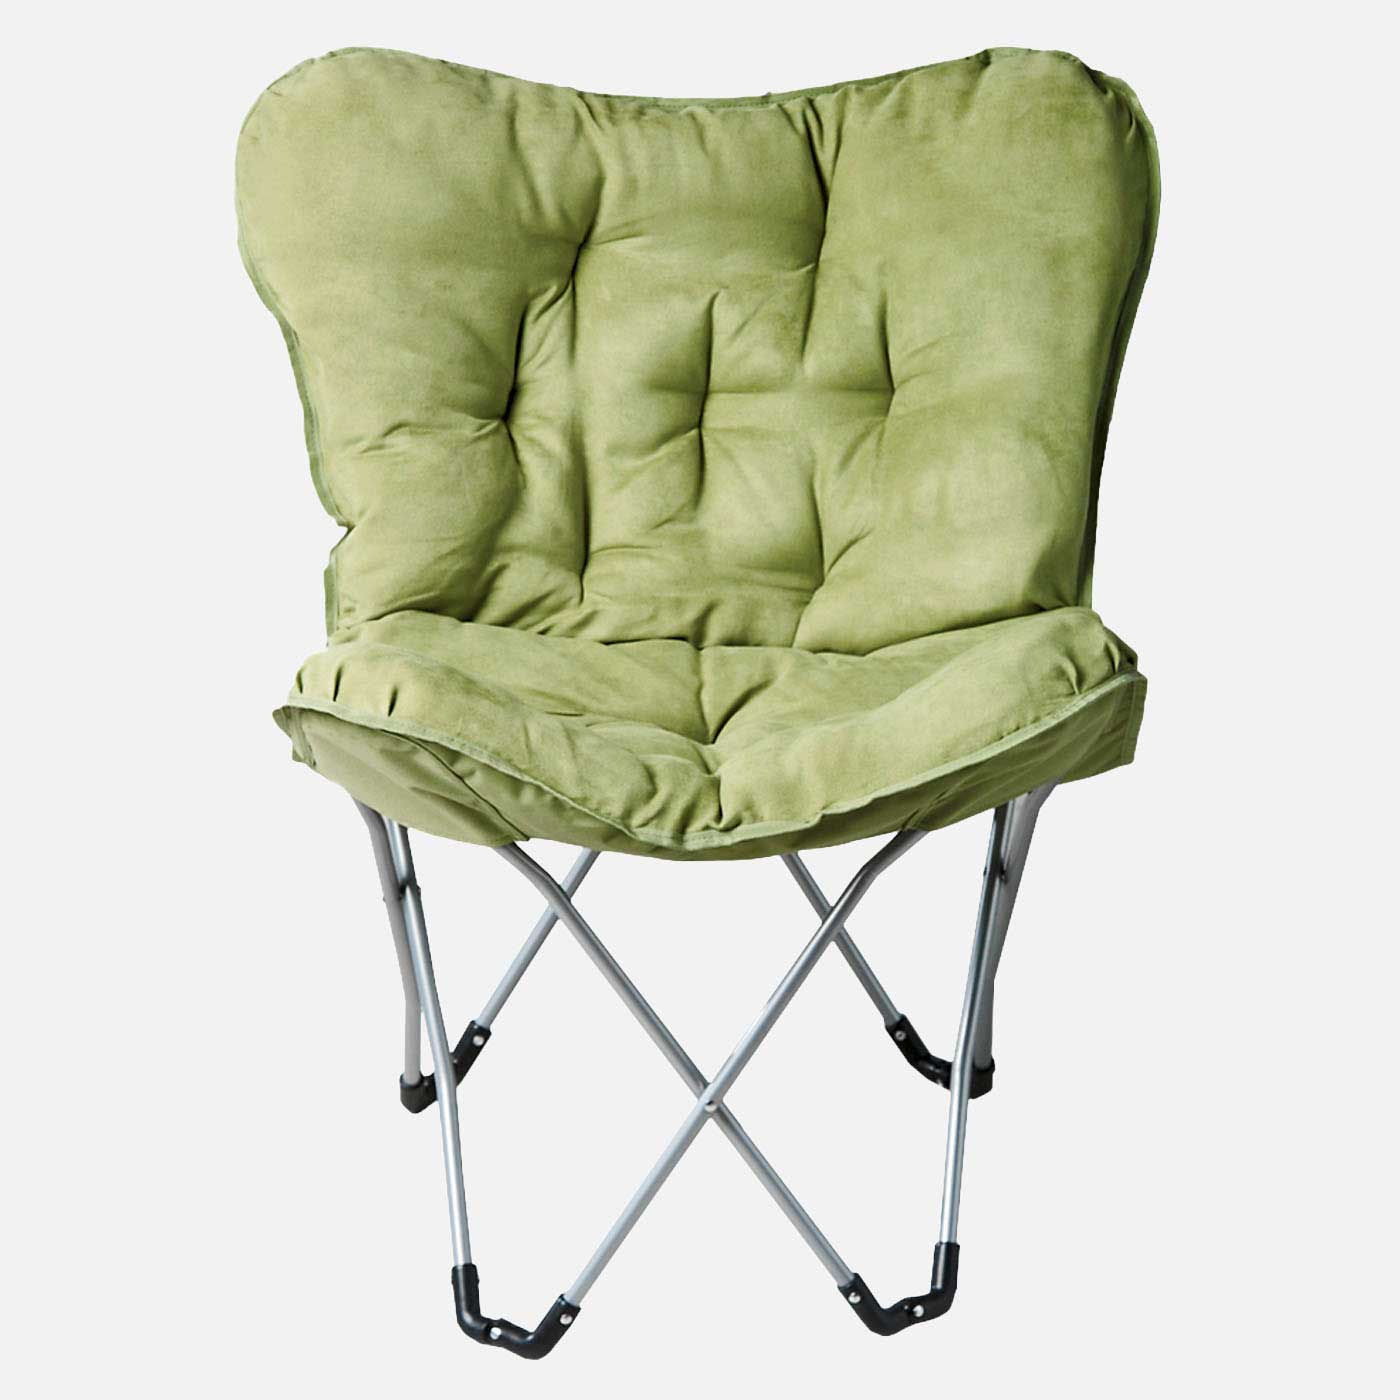 Stylish Green Folding Chair with Cushion